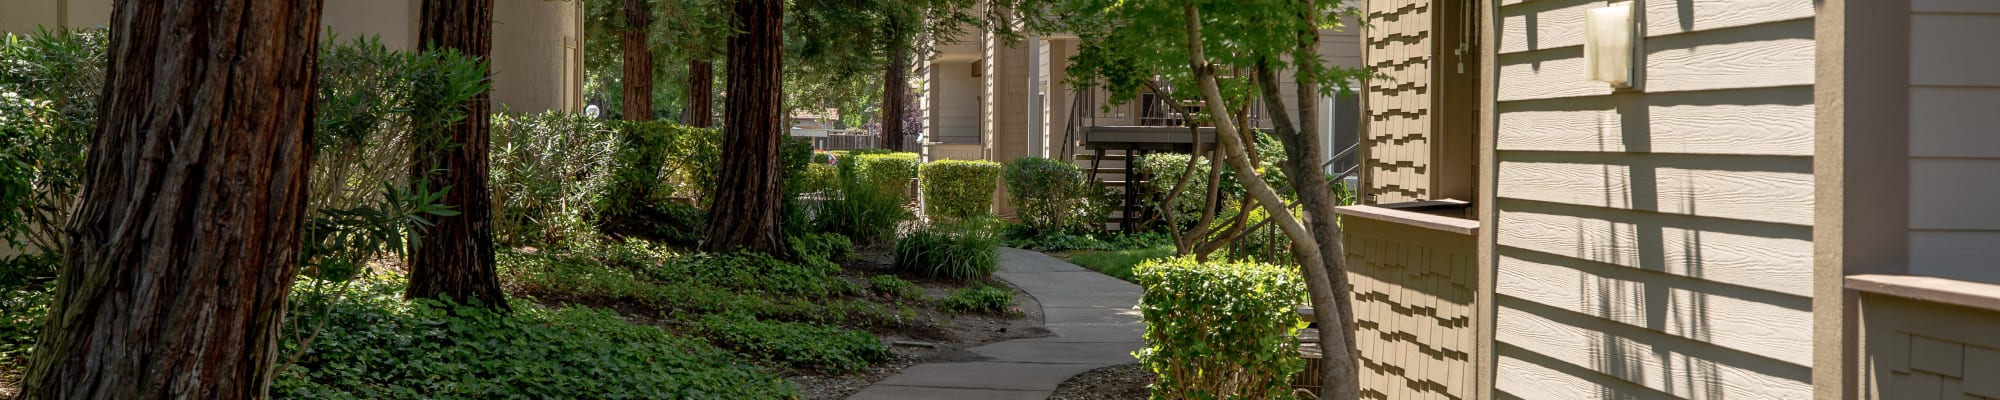 Resident perks at Shaliko in Rocklin, California